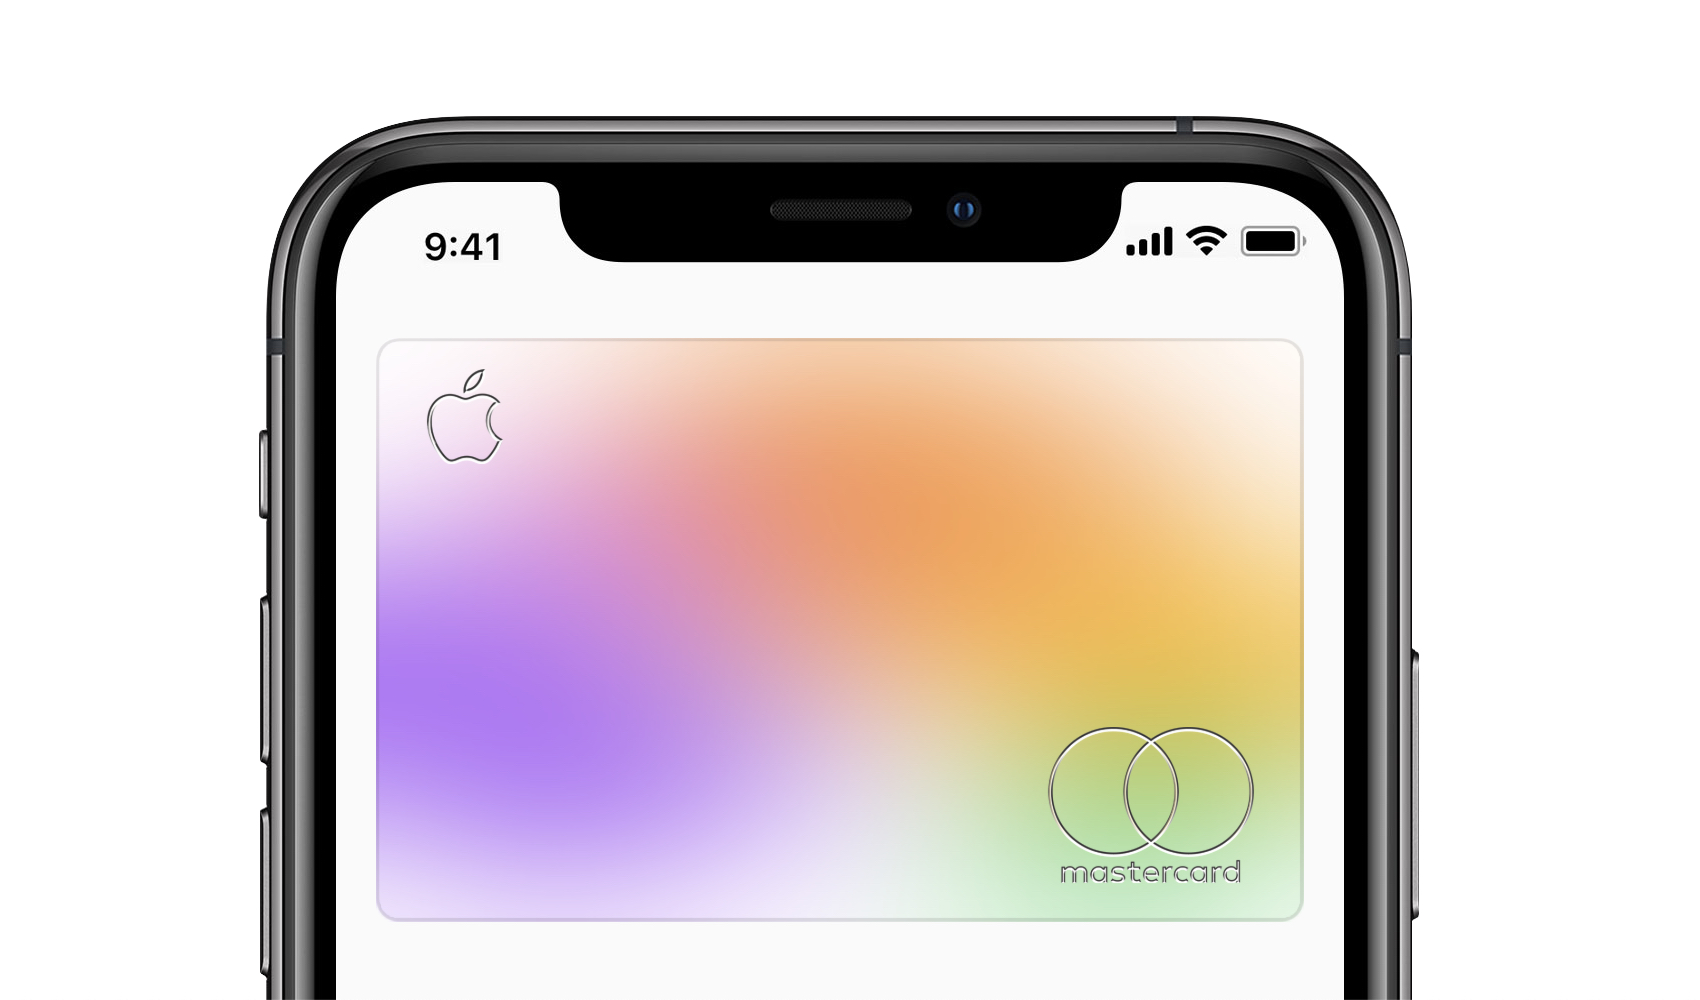 57959c7cd8b1b 5 Things to Know About the iOS 12.4 Update